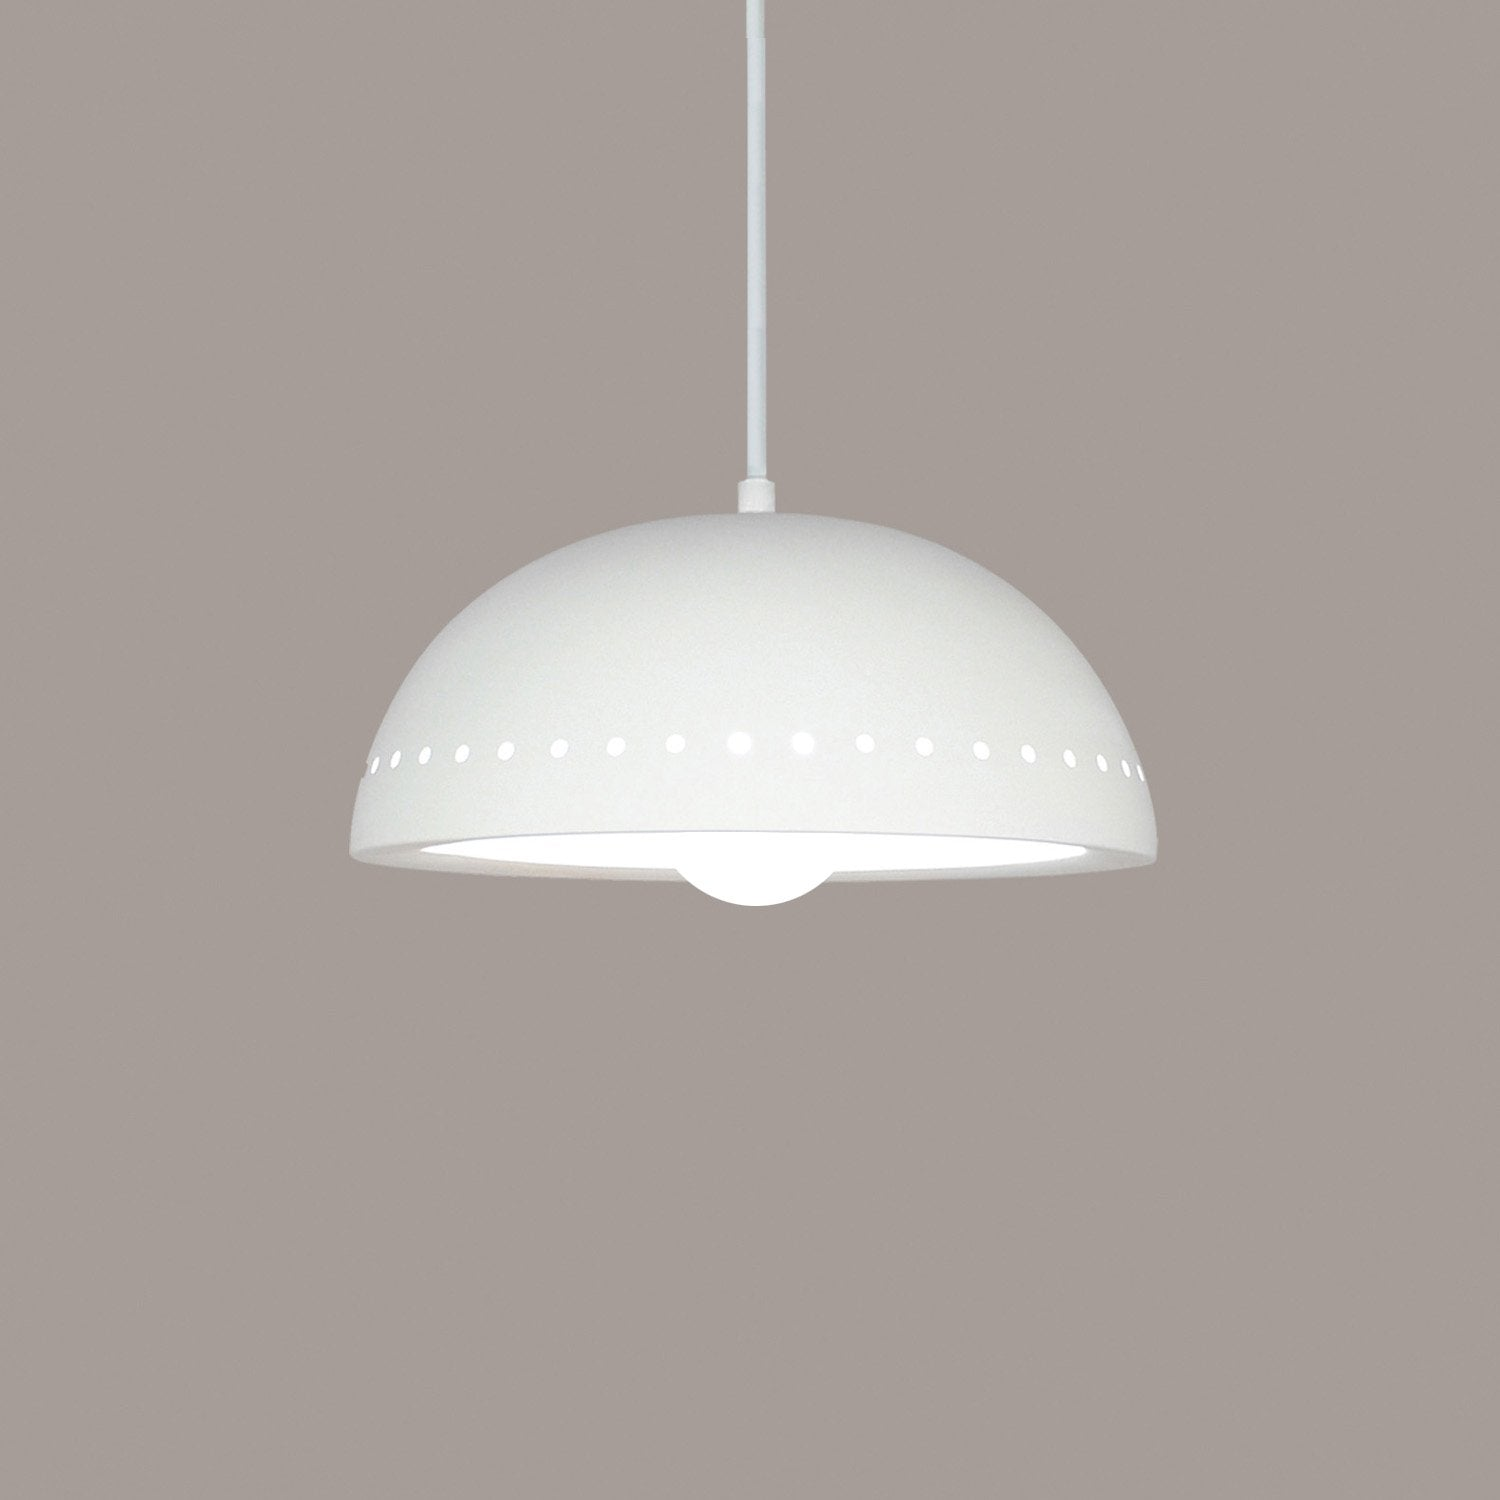 A19 P305-MB2-WCC Islands of Light Collection Cyprus Zinc White Marble Finish Pendant